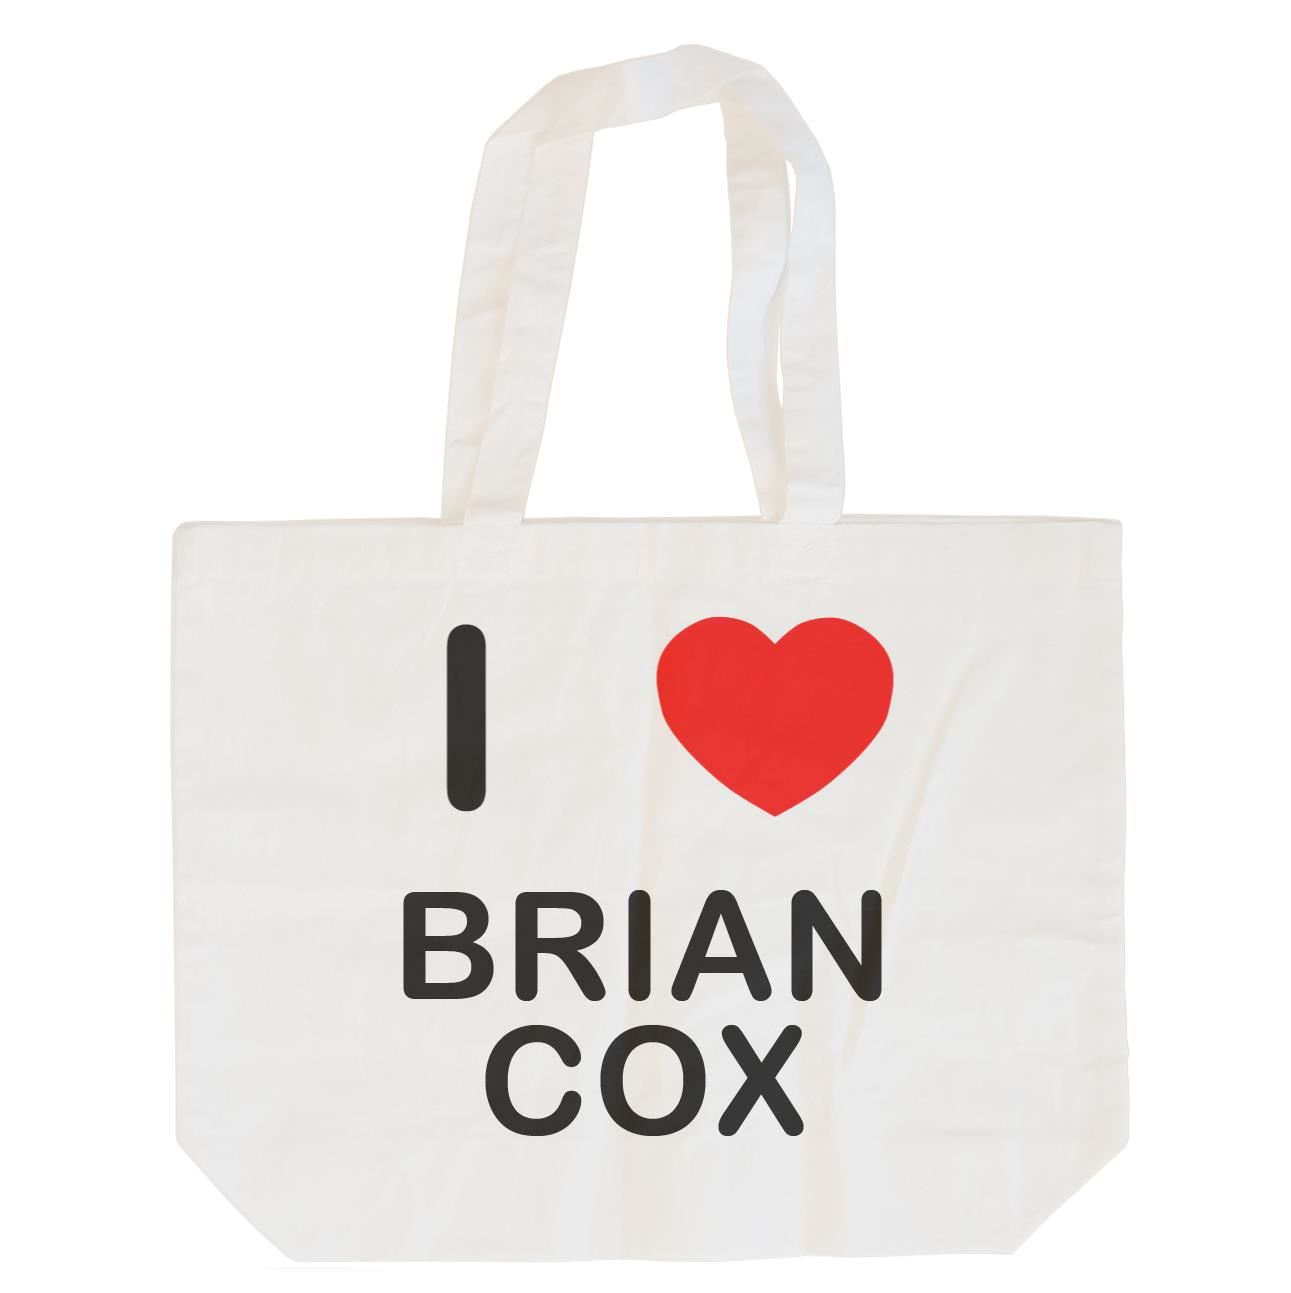 I Love Brian Cox - Cotton Bag | Size choice Tote, Shopper or Sling